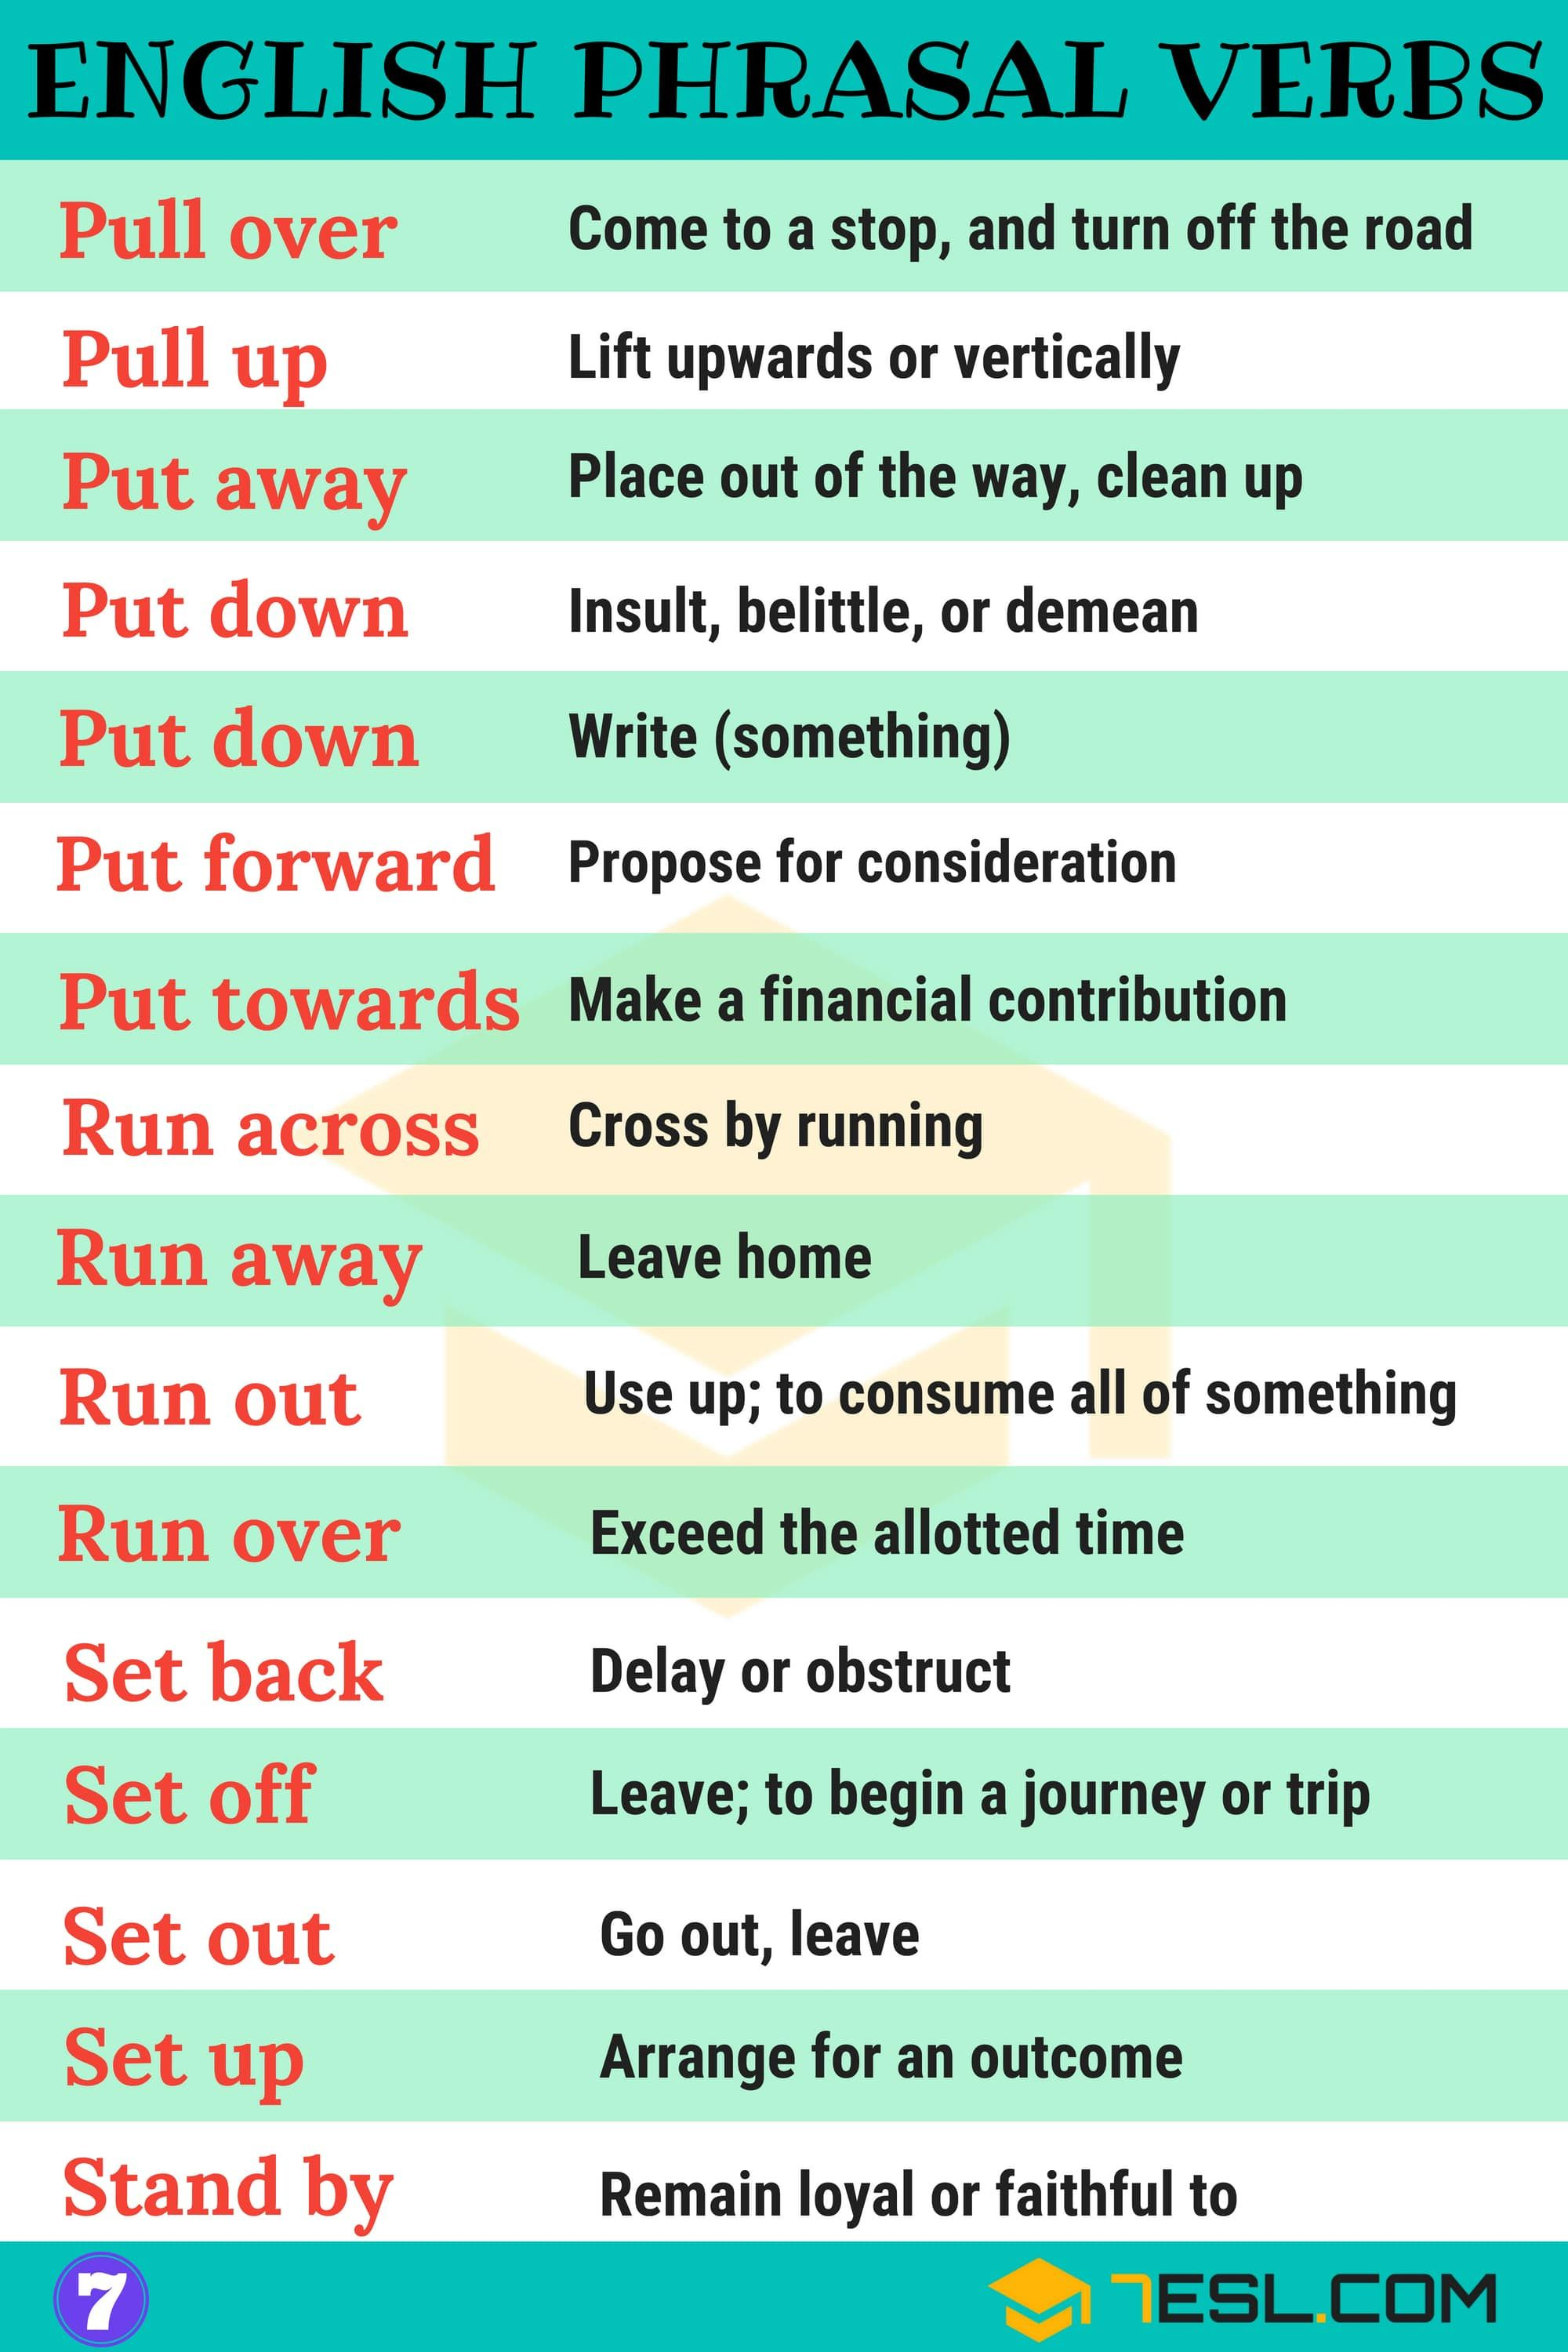 2000 Phrasal Verbs List From A Z To Sound Like A Native 7esl English Verbs English Idioms Learn English Vocabulary [ 3000 x 2000 Pixel ]